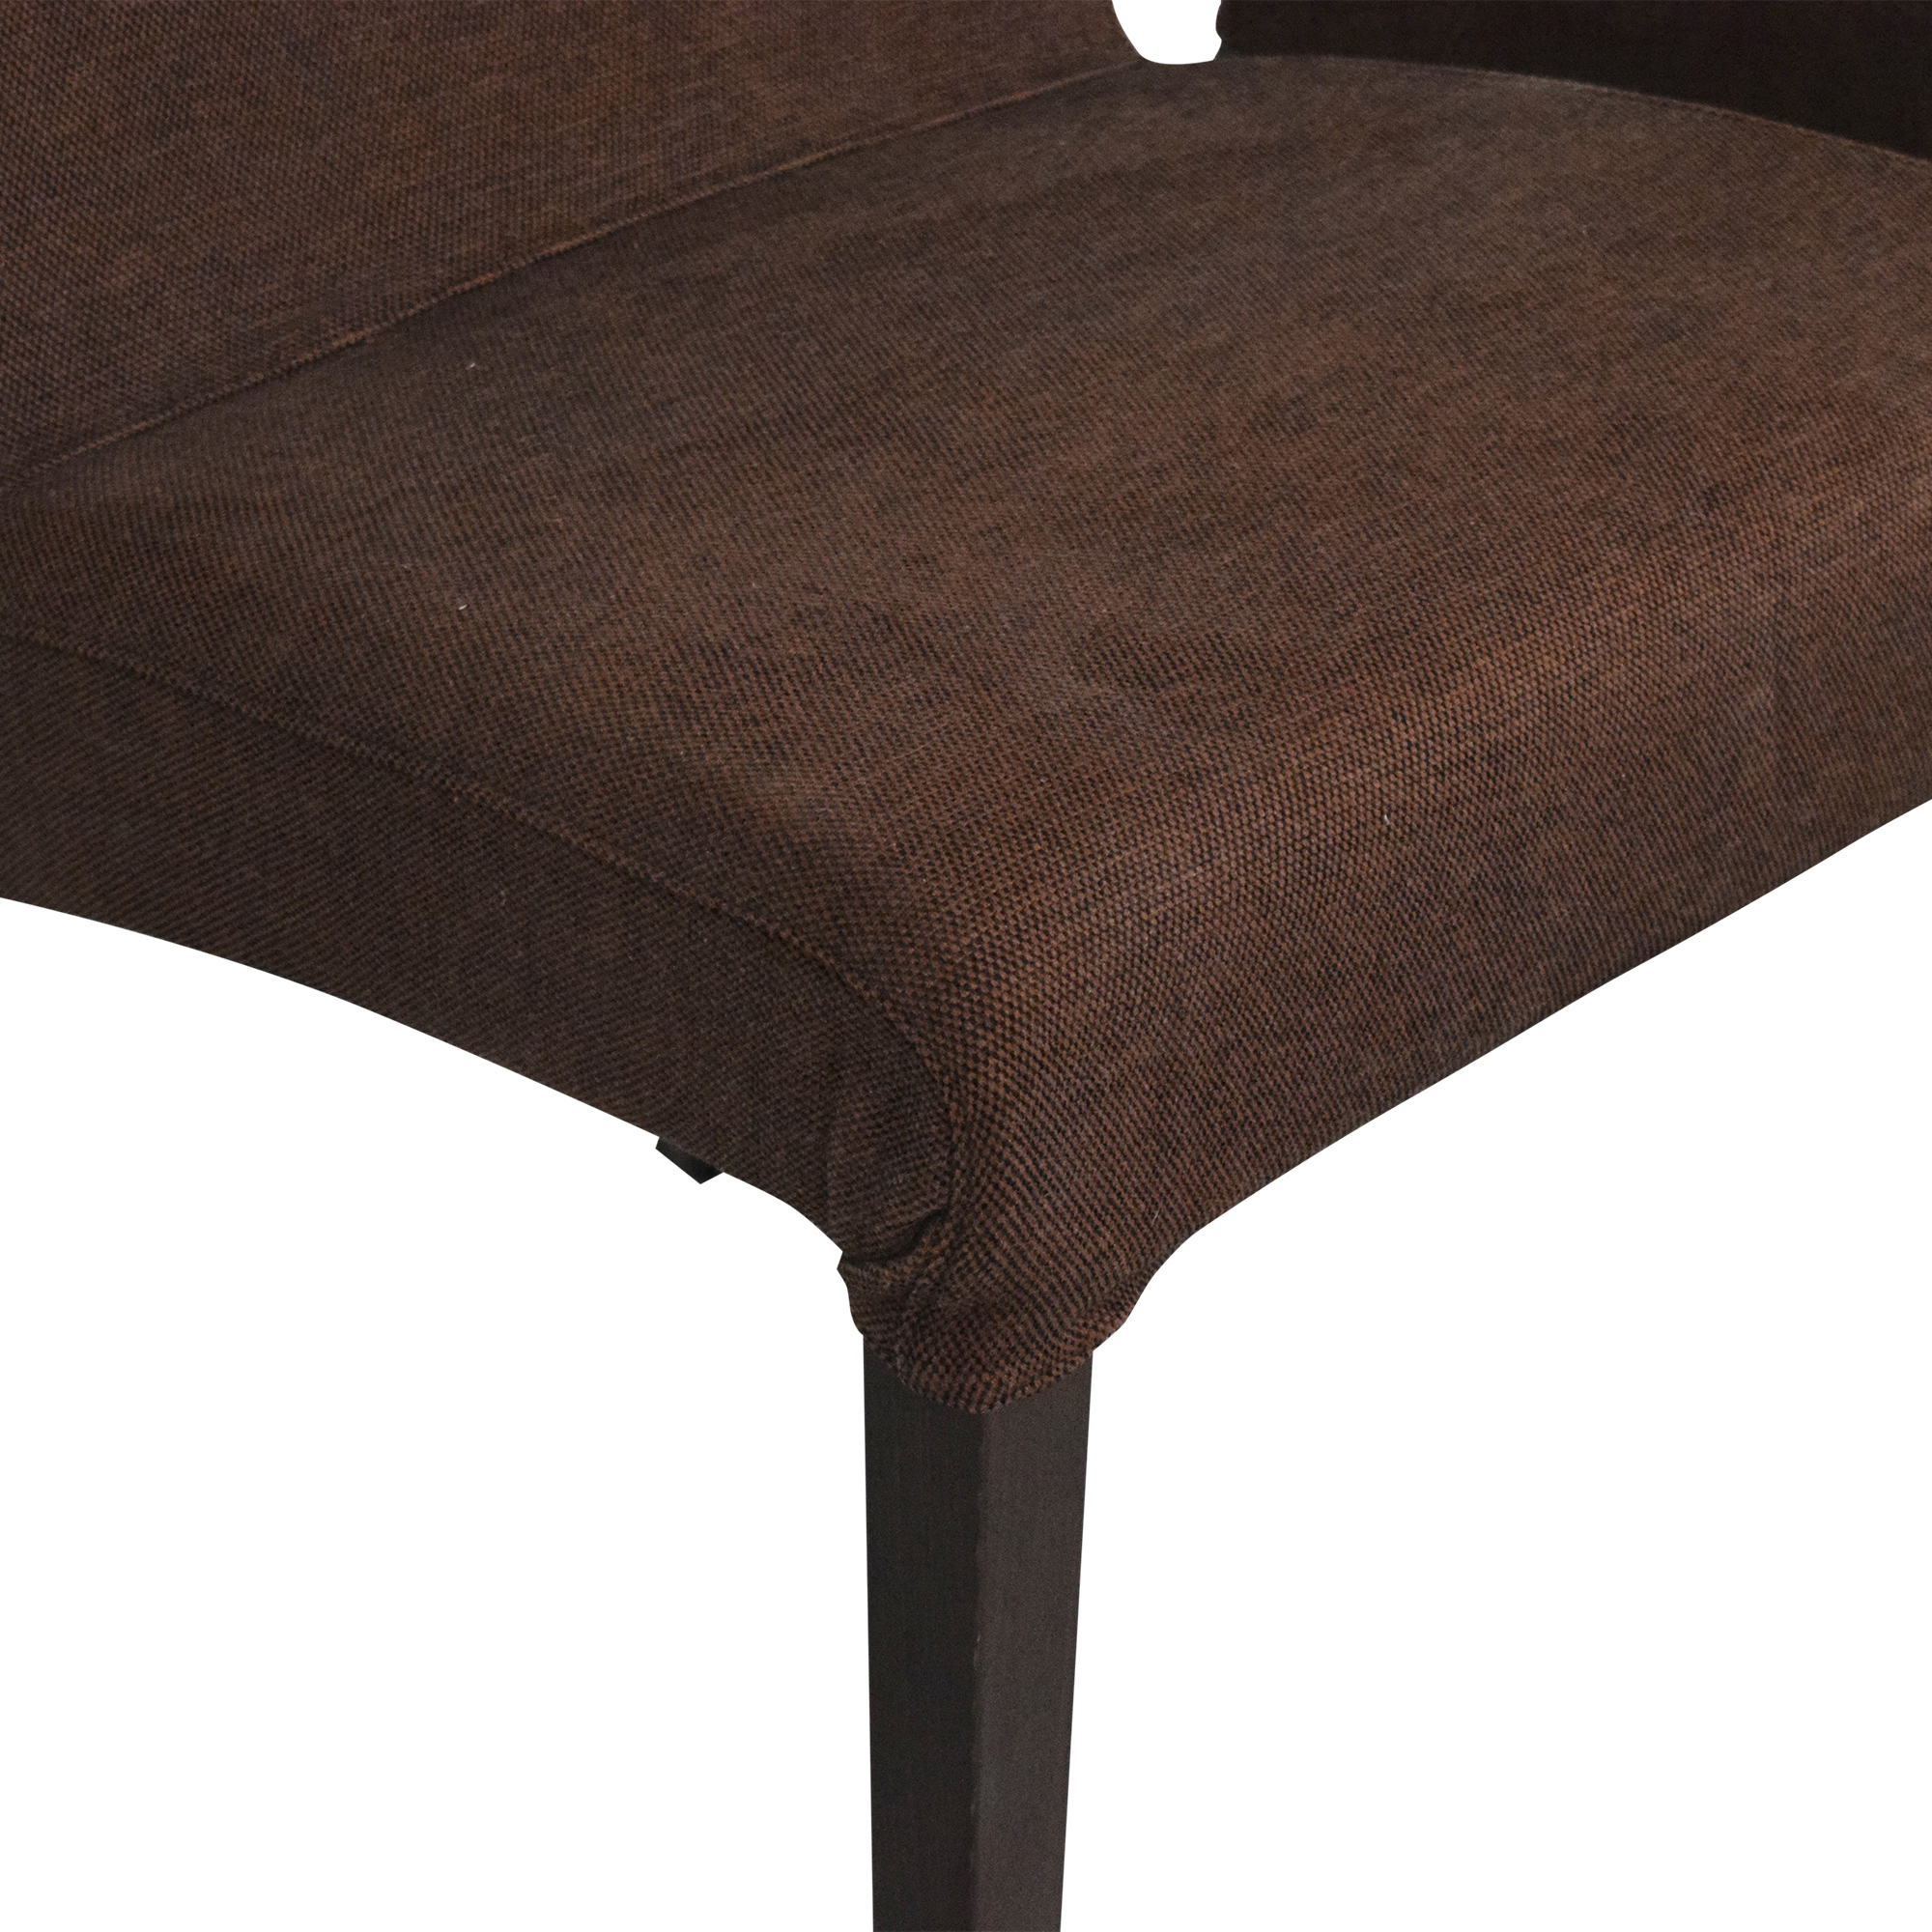 Calligaris Calligaris Upholstered Dining Chairs Dining Chairs